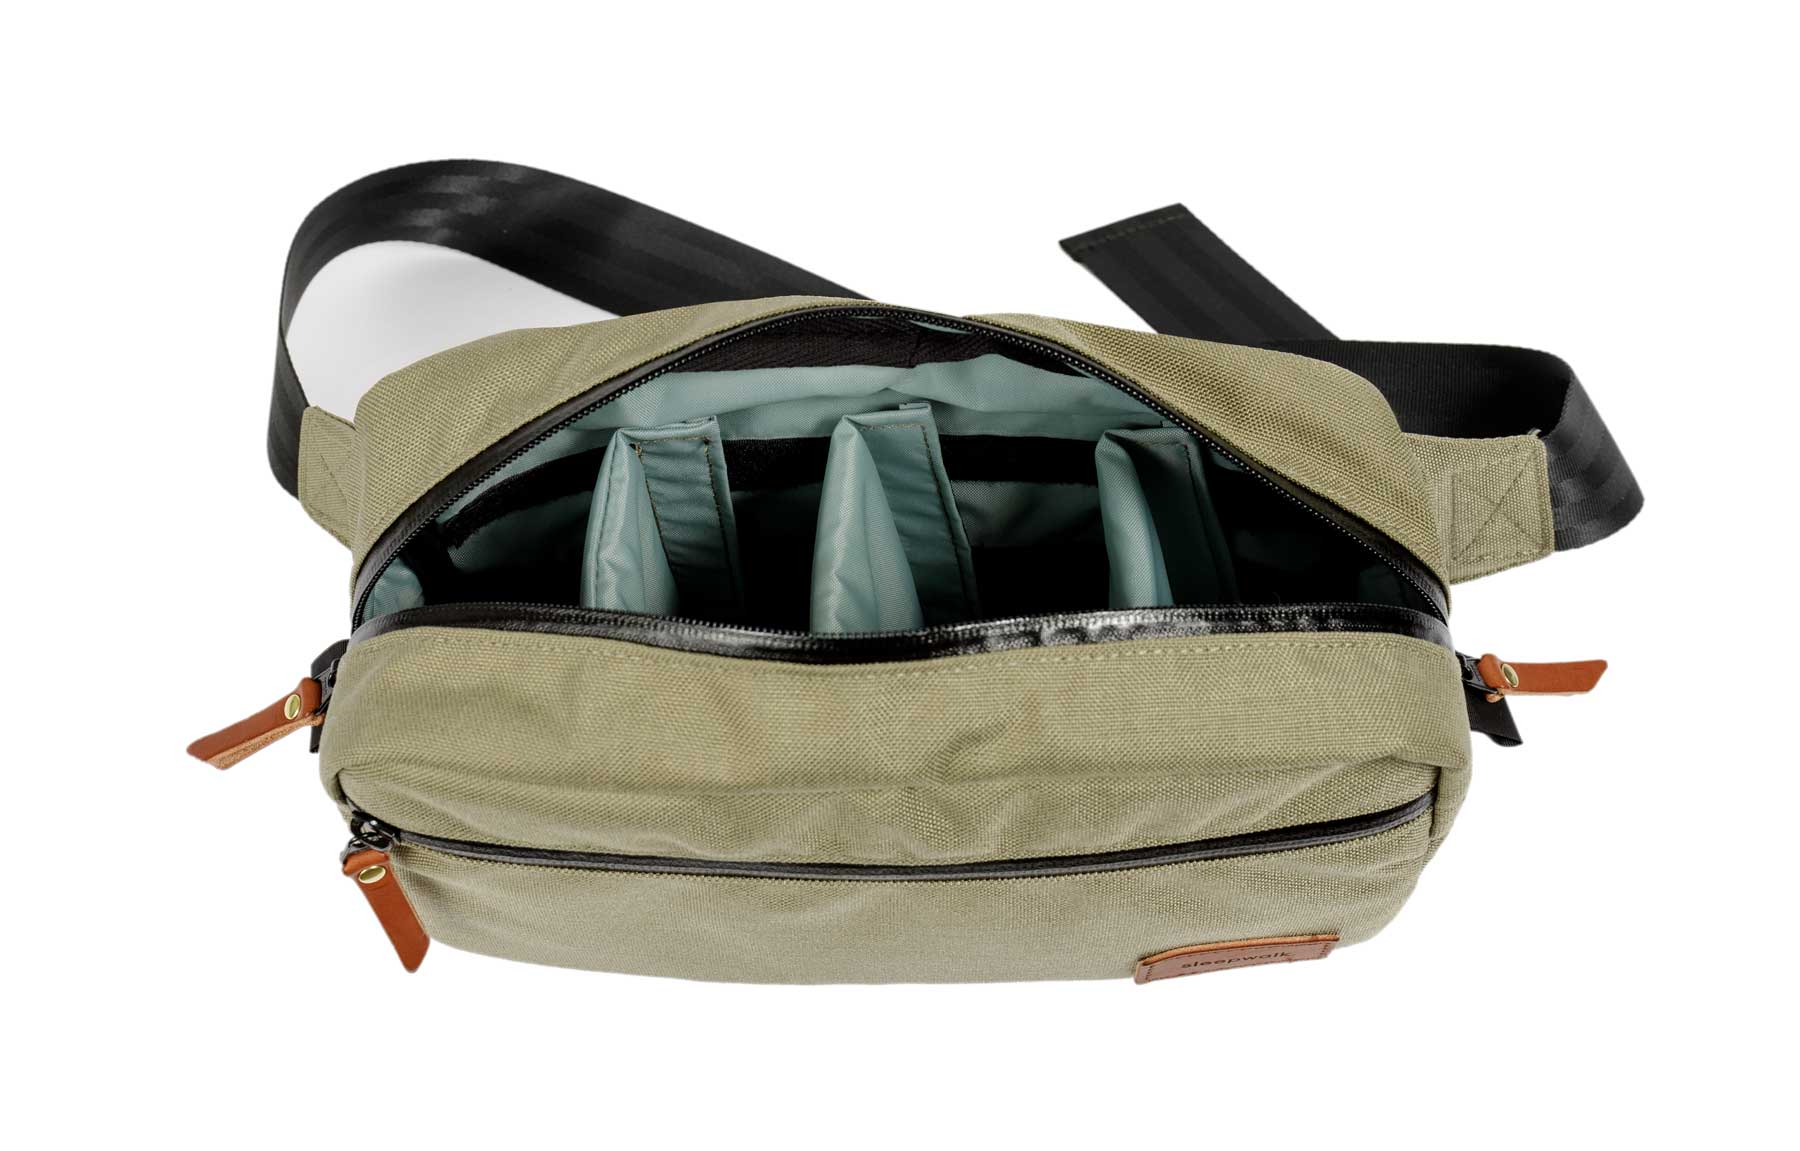 sleepwalk camera sling pack inside sage tan